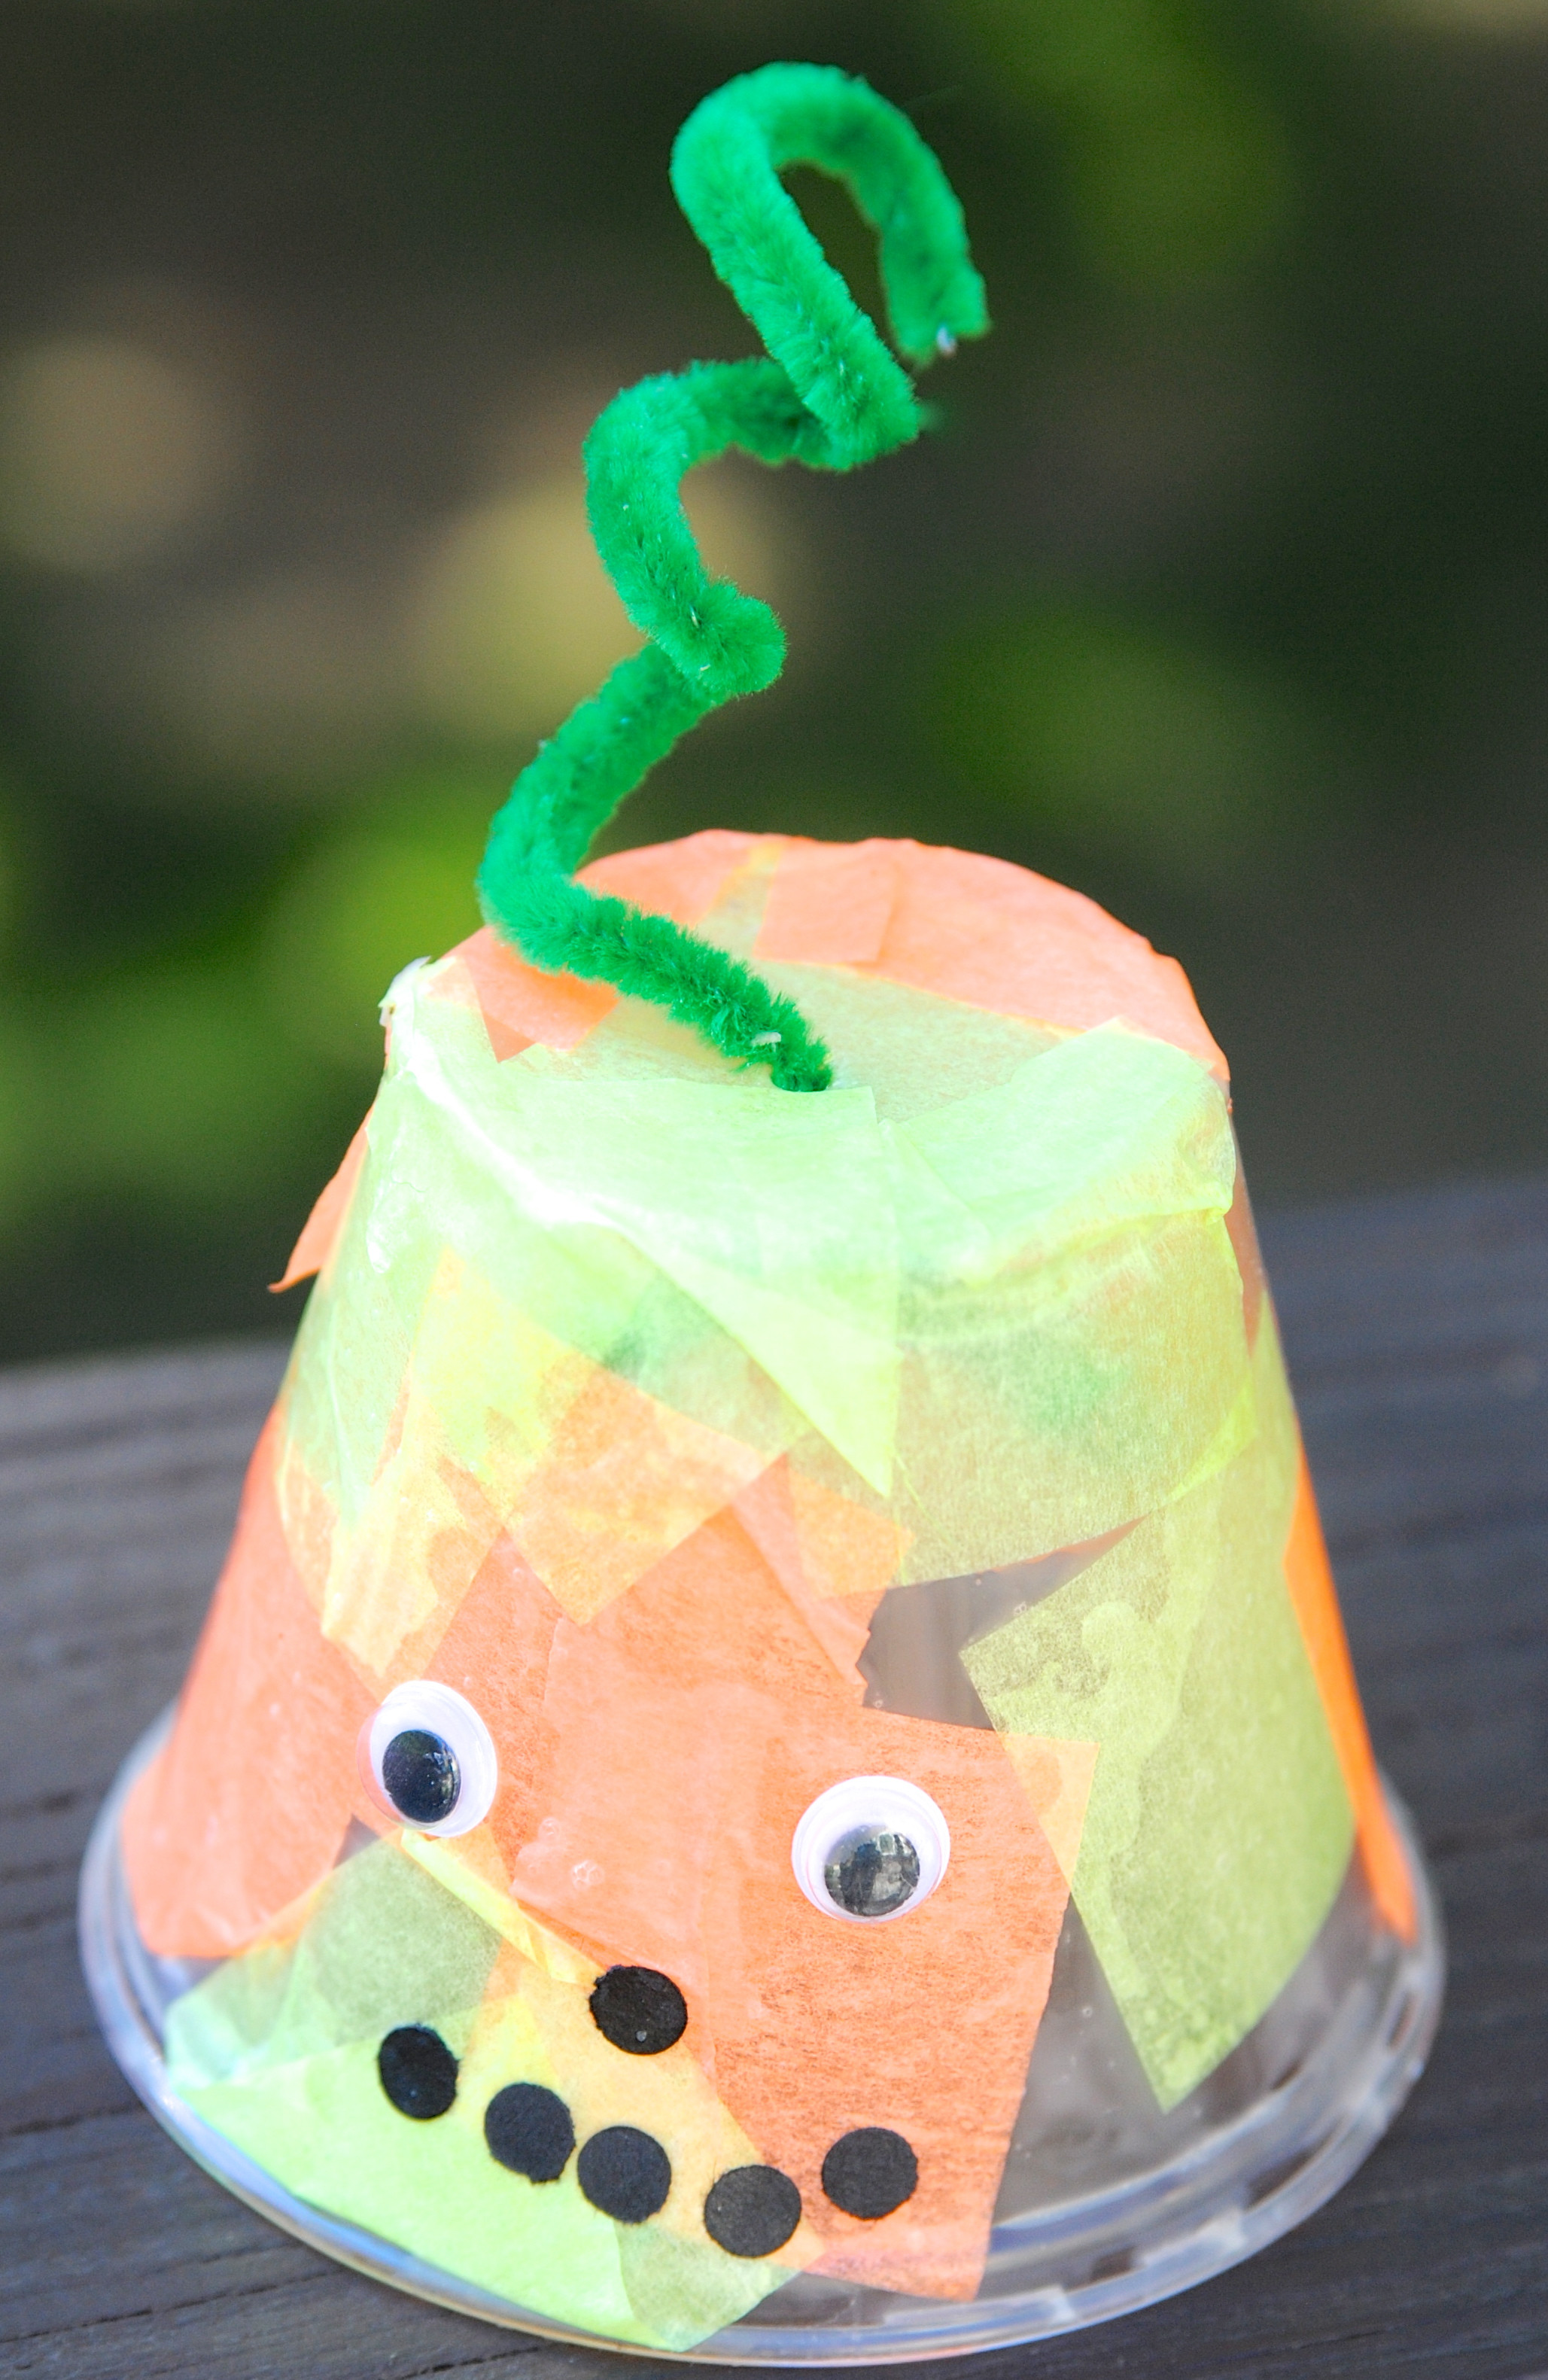 Best ideas about Crafts Ideas For Kids . Save or Pin Quick Halloween Craft Ideas for Kids Now.